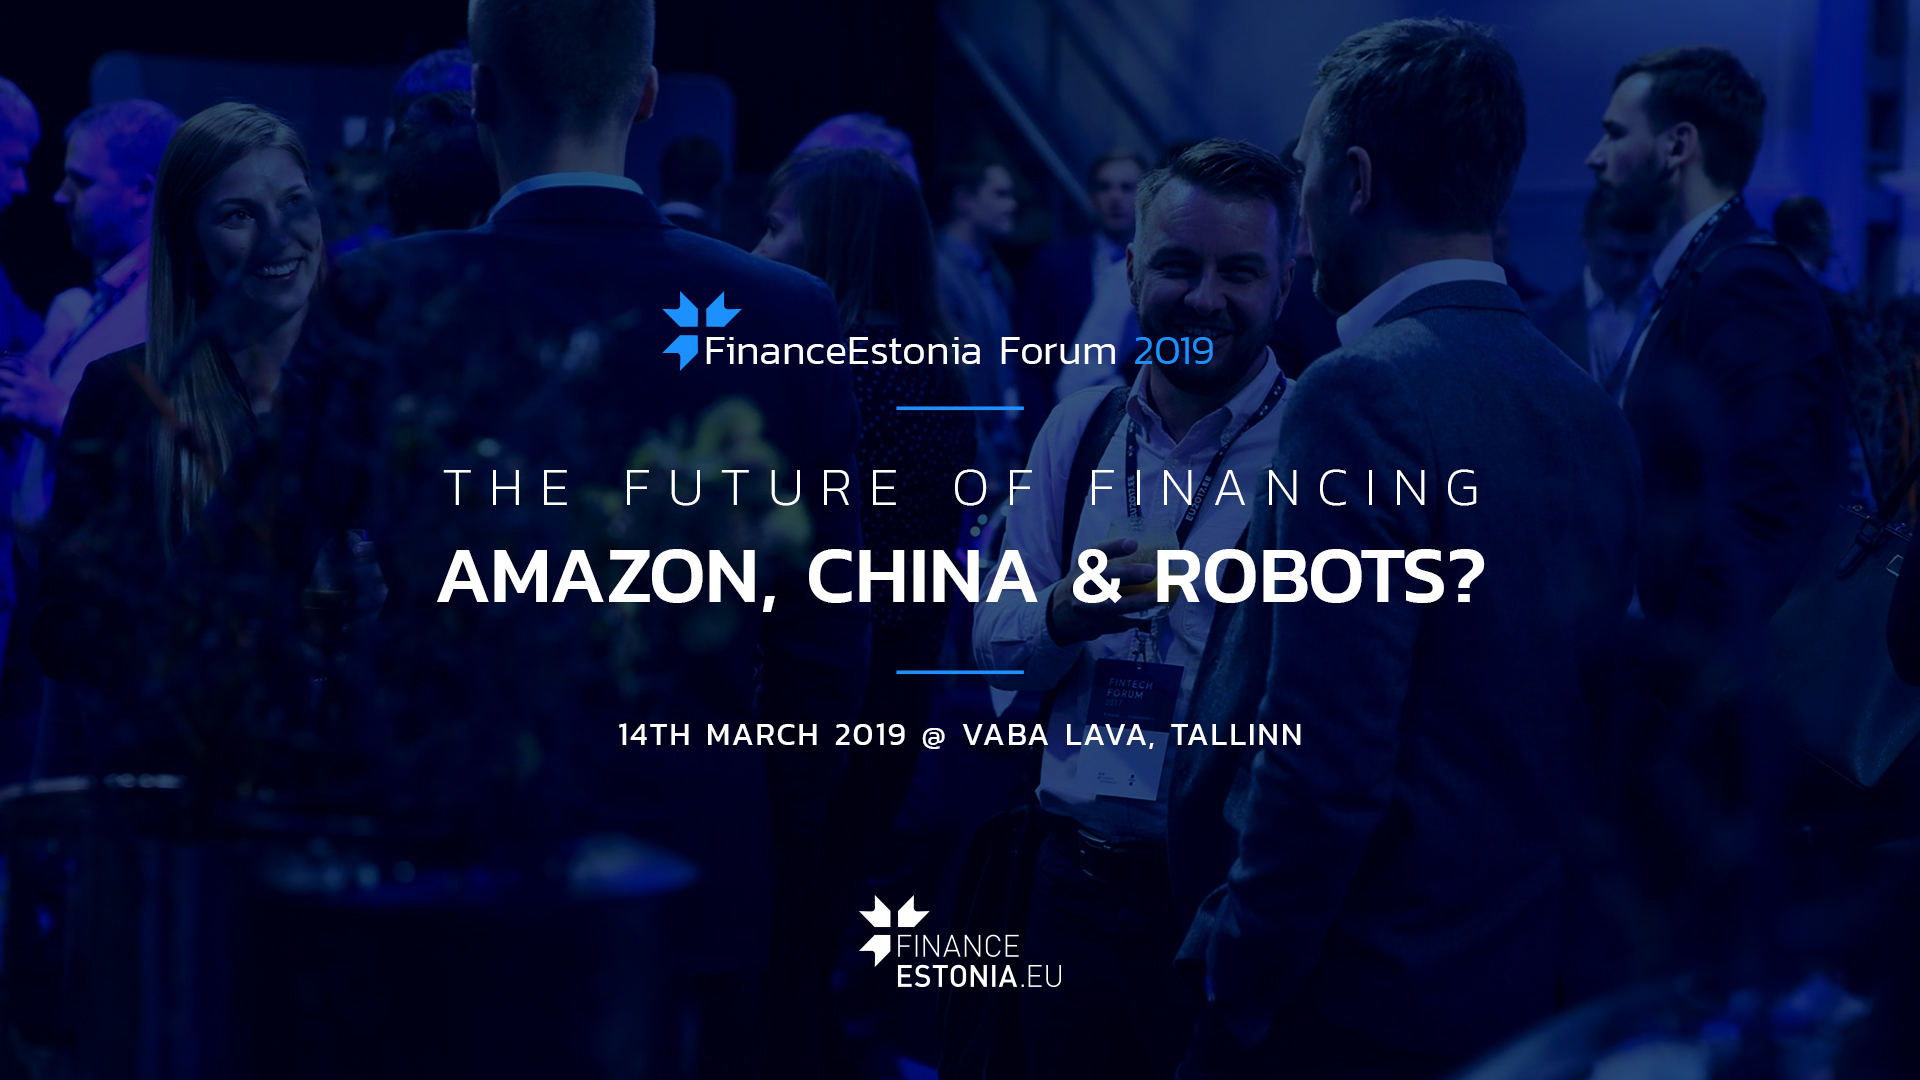 FinanceEstonia Forum 2019 - The future of financing: Amazon, China